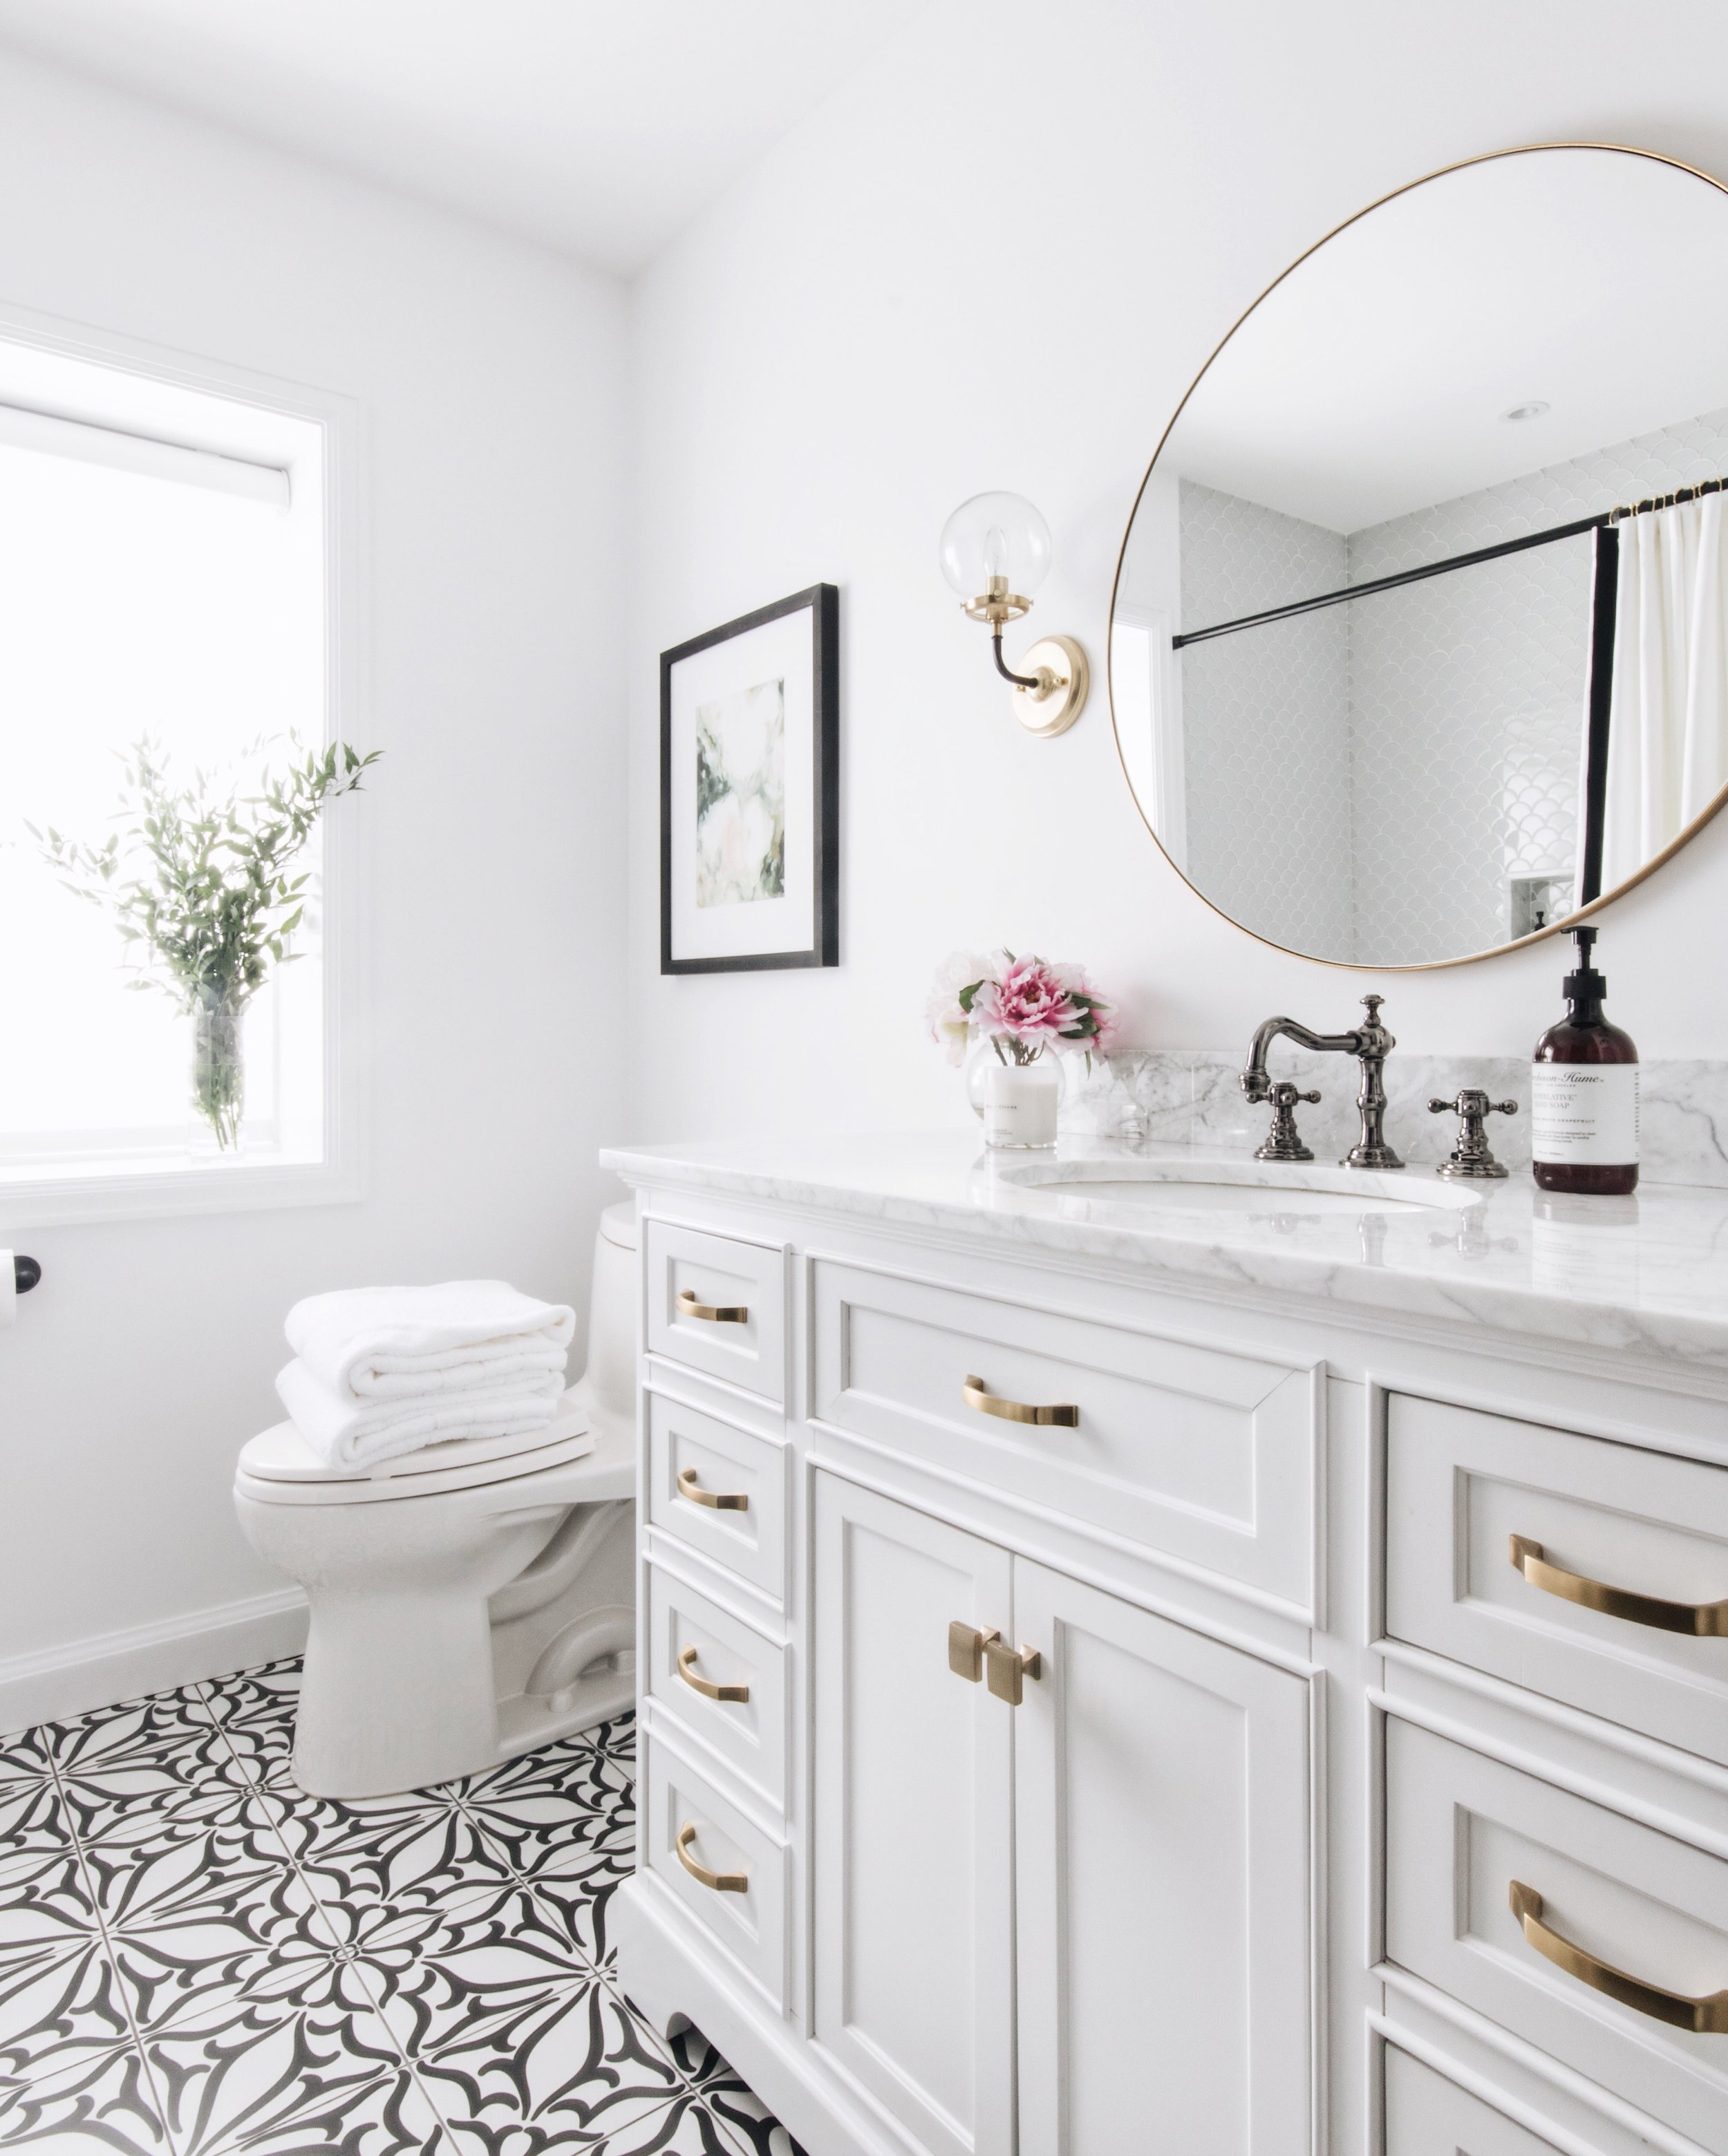 Funky Tile Farmhouse Style Powder Room Design by Ottawa Interior Design Firm Leclair Decor